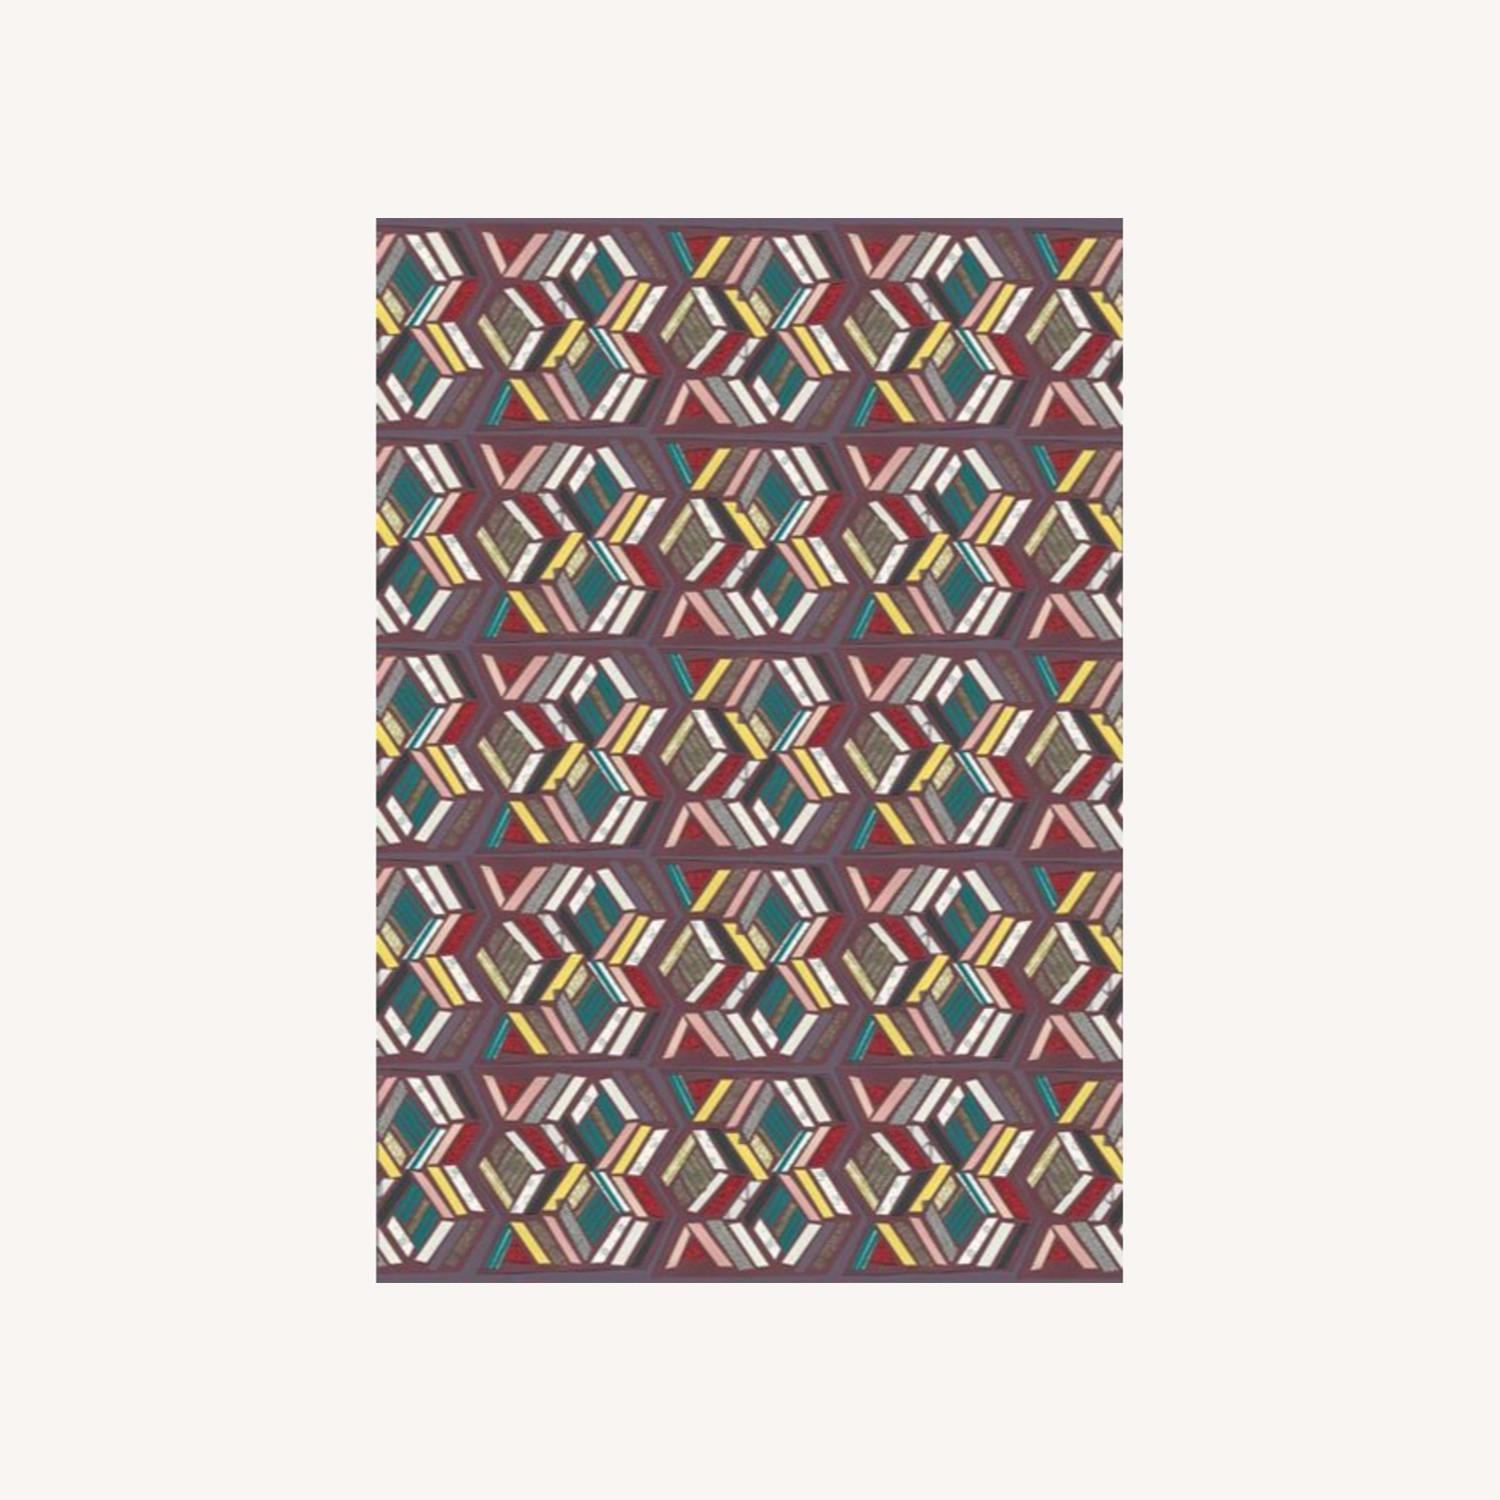 Domestic Construction Patterned Floor Mats (2) - image-0